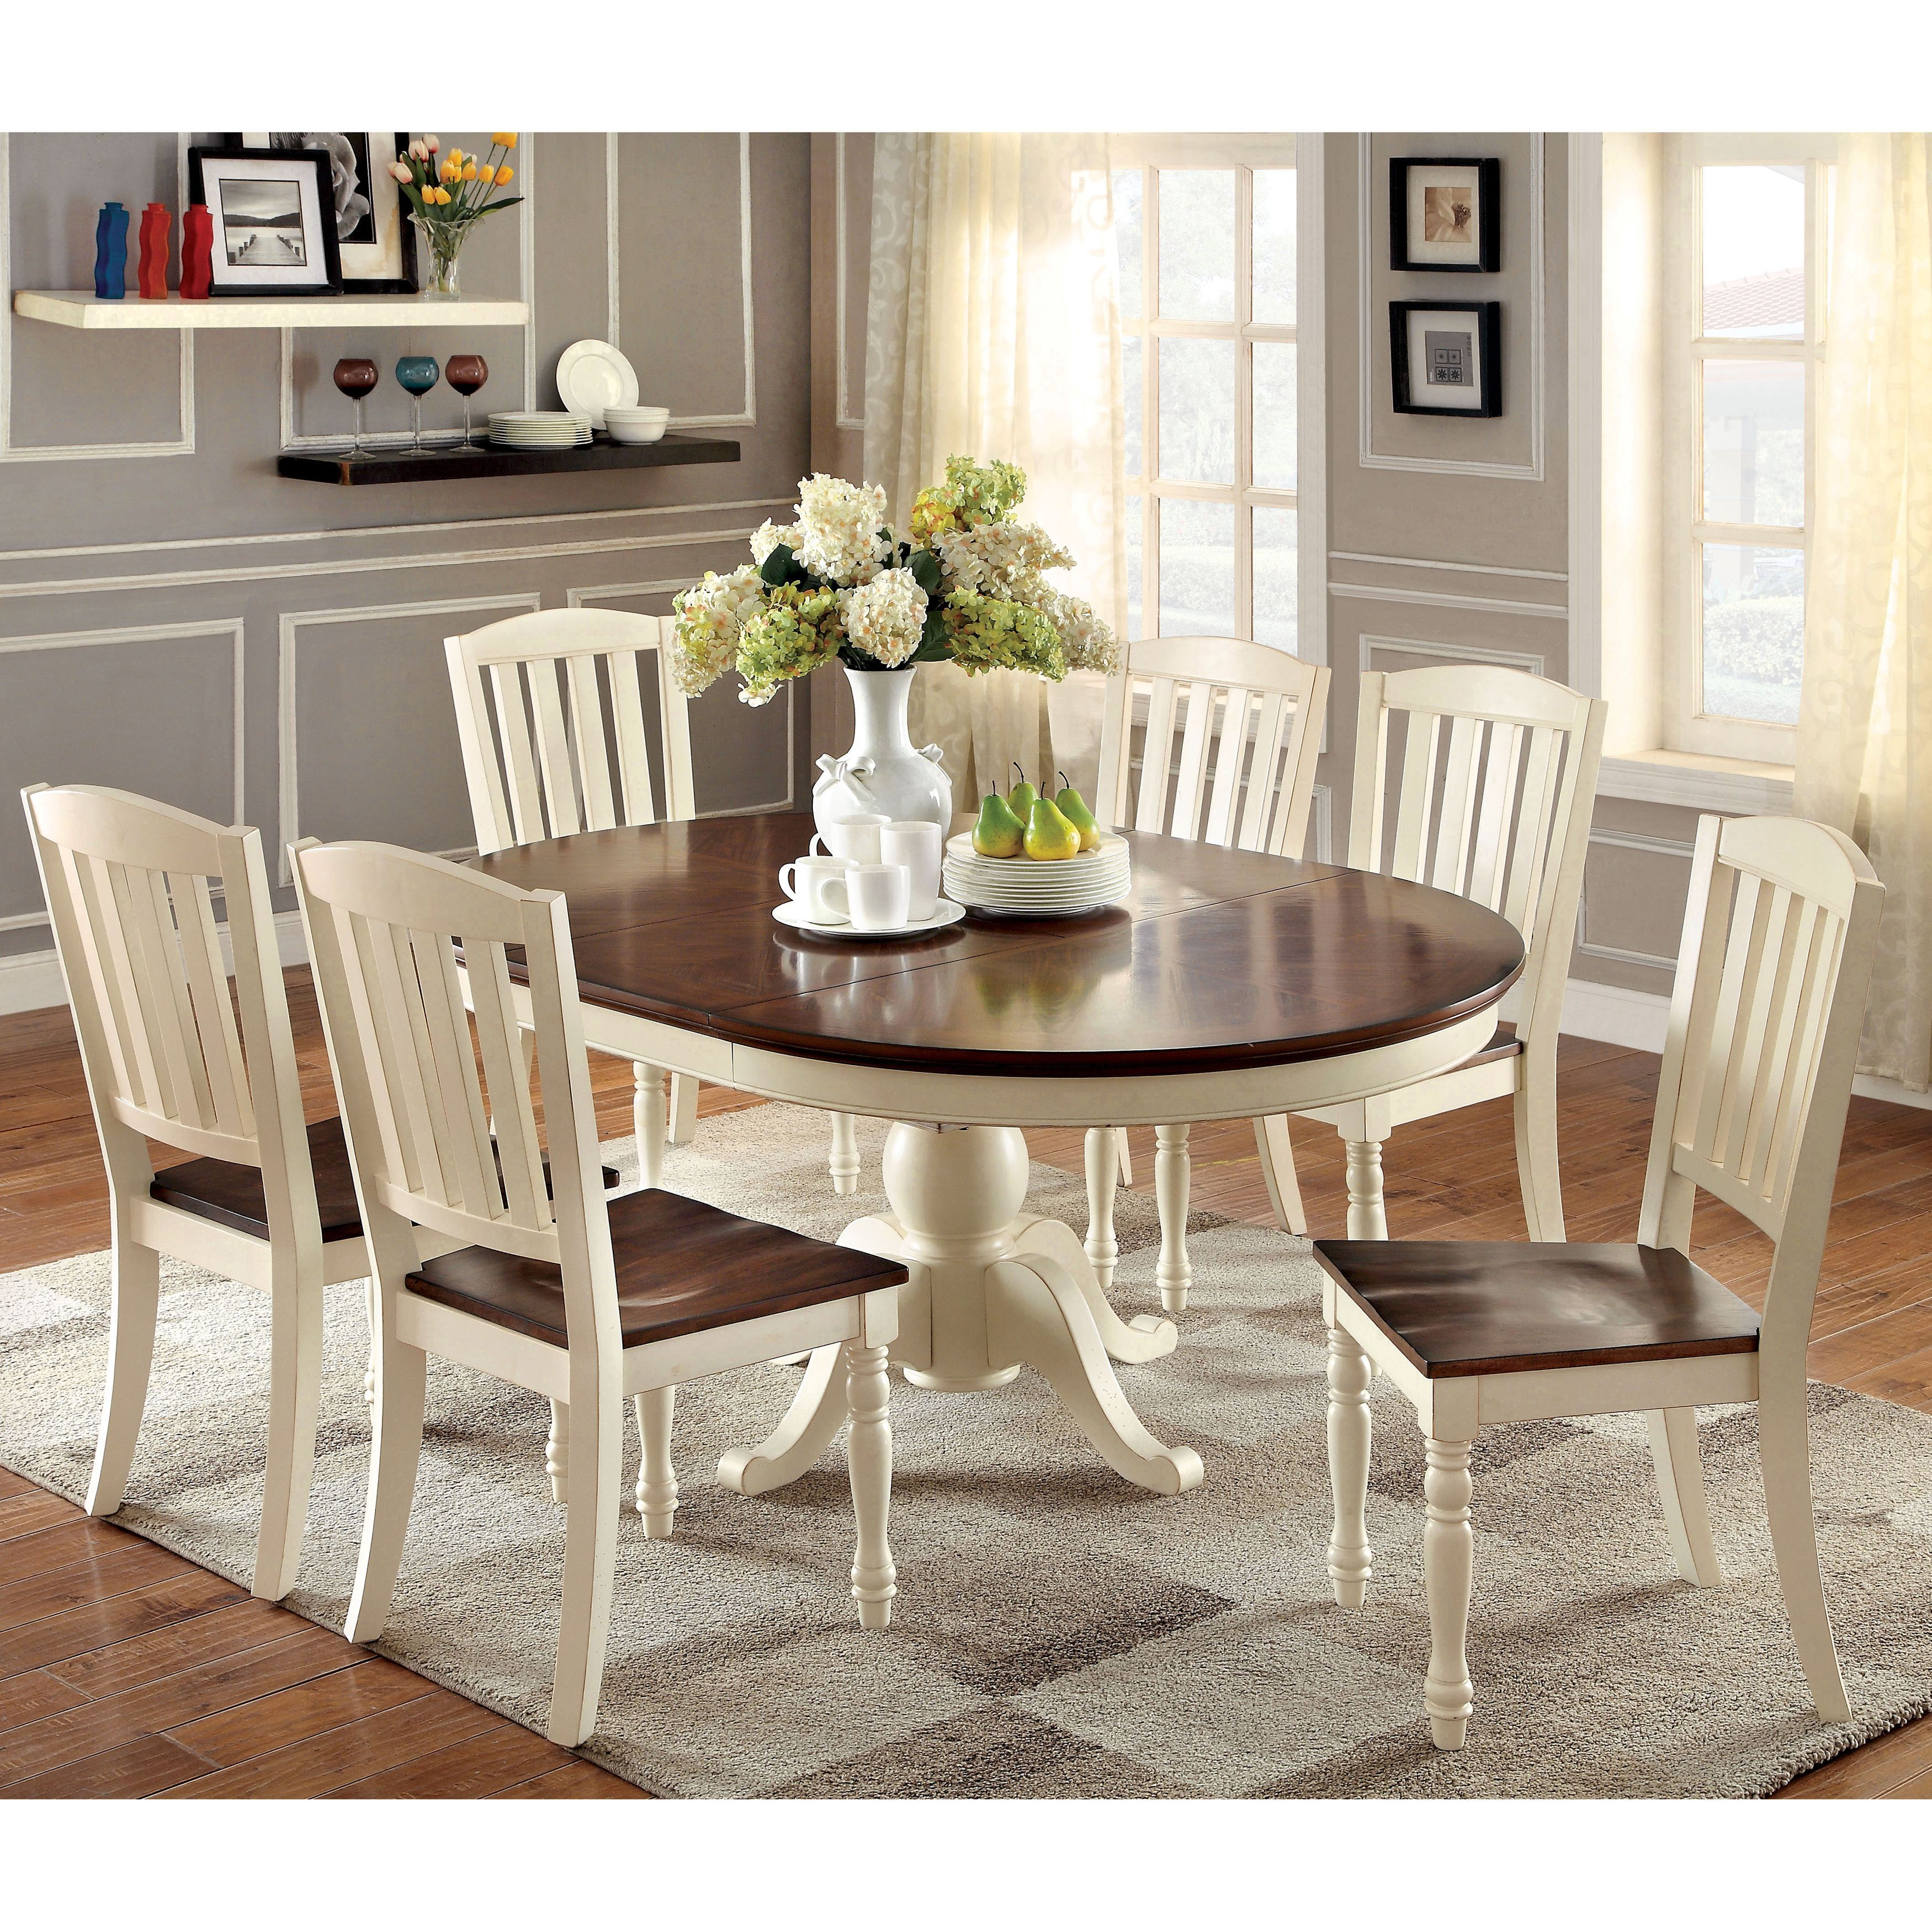 The Gray Barn Pitchfork 7 Piece Cottage Style Oval Dining Set